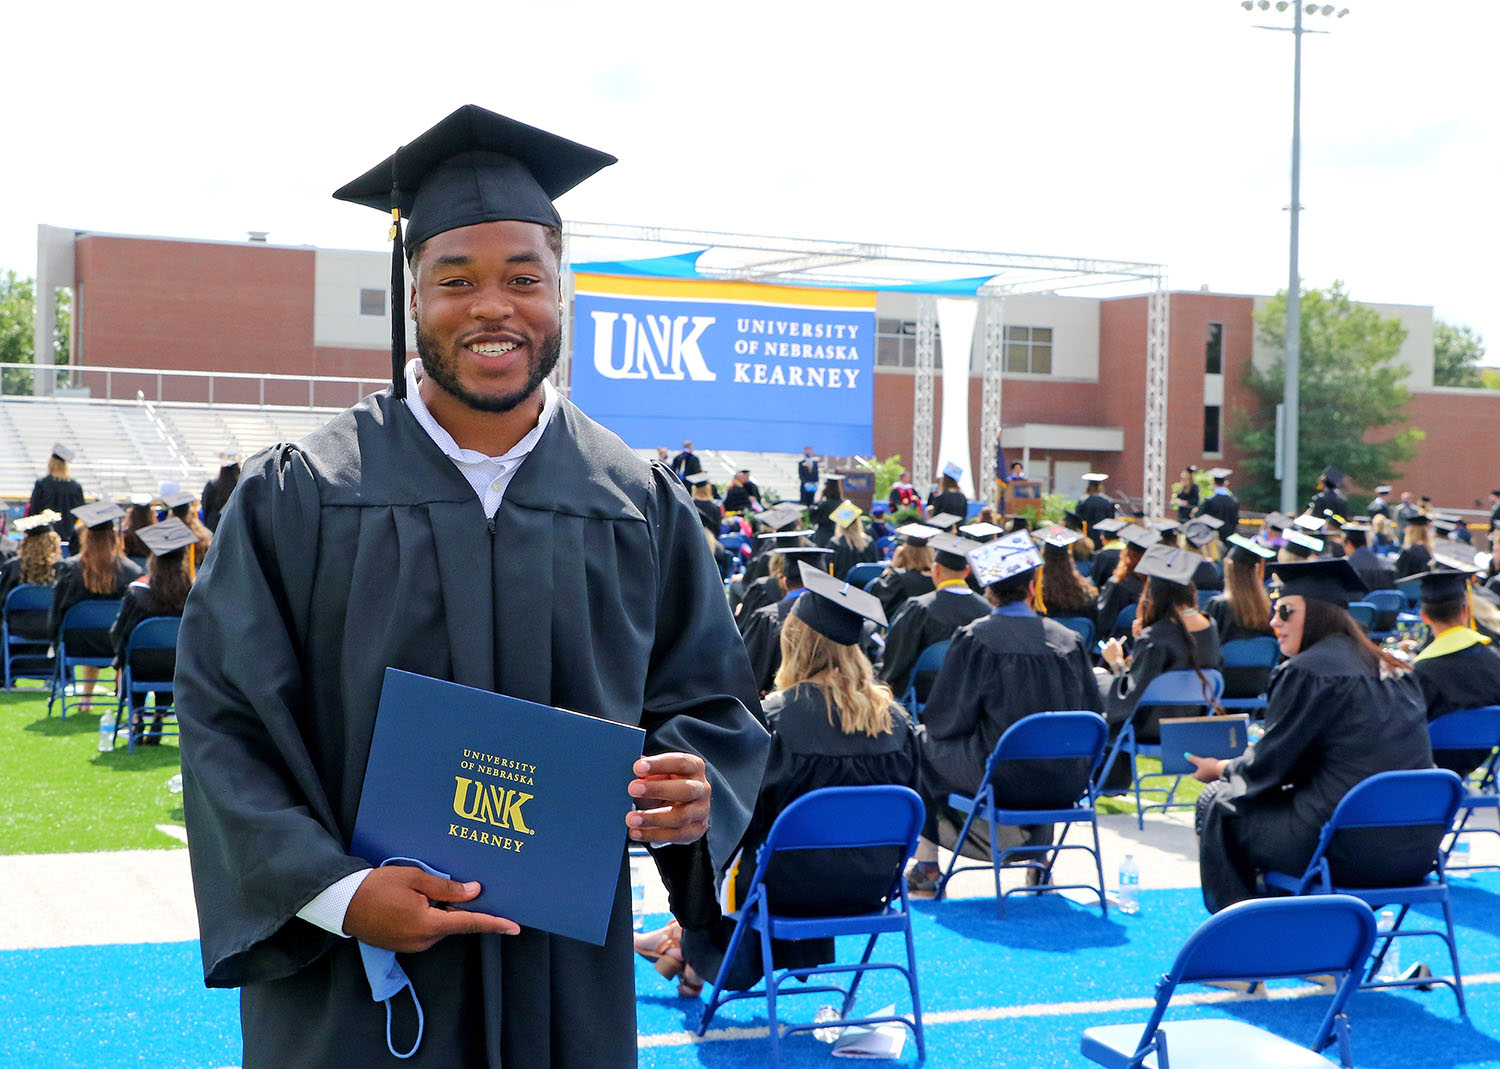 "Rakid Hill's family traveled from St. Louis, Missouri, to watch him receive his degree during Friday's commencement ceremony at UNK. ""My mom and dad wanted to see me walk,"" Hill said. ""I'm their first kid to graduate from a university, so that was big for them."" (Photos by Todd Gottula, UNK Communications)"